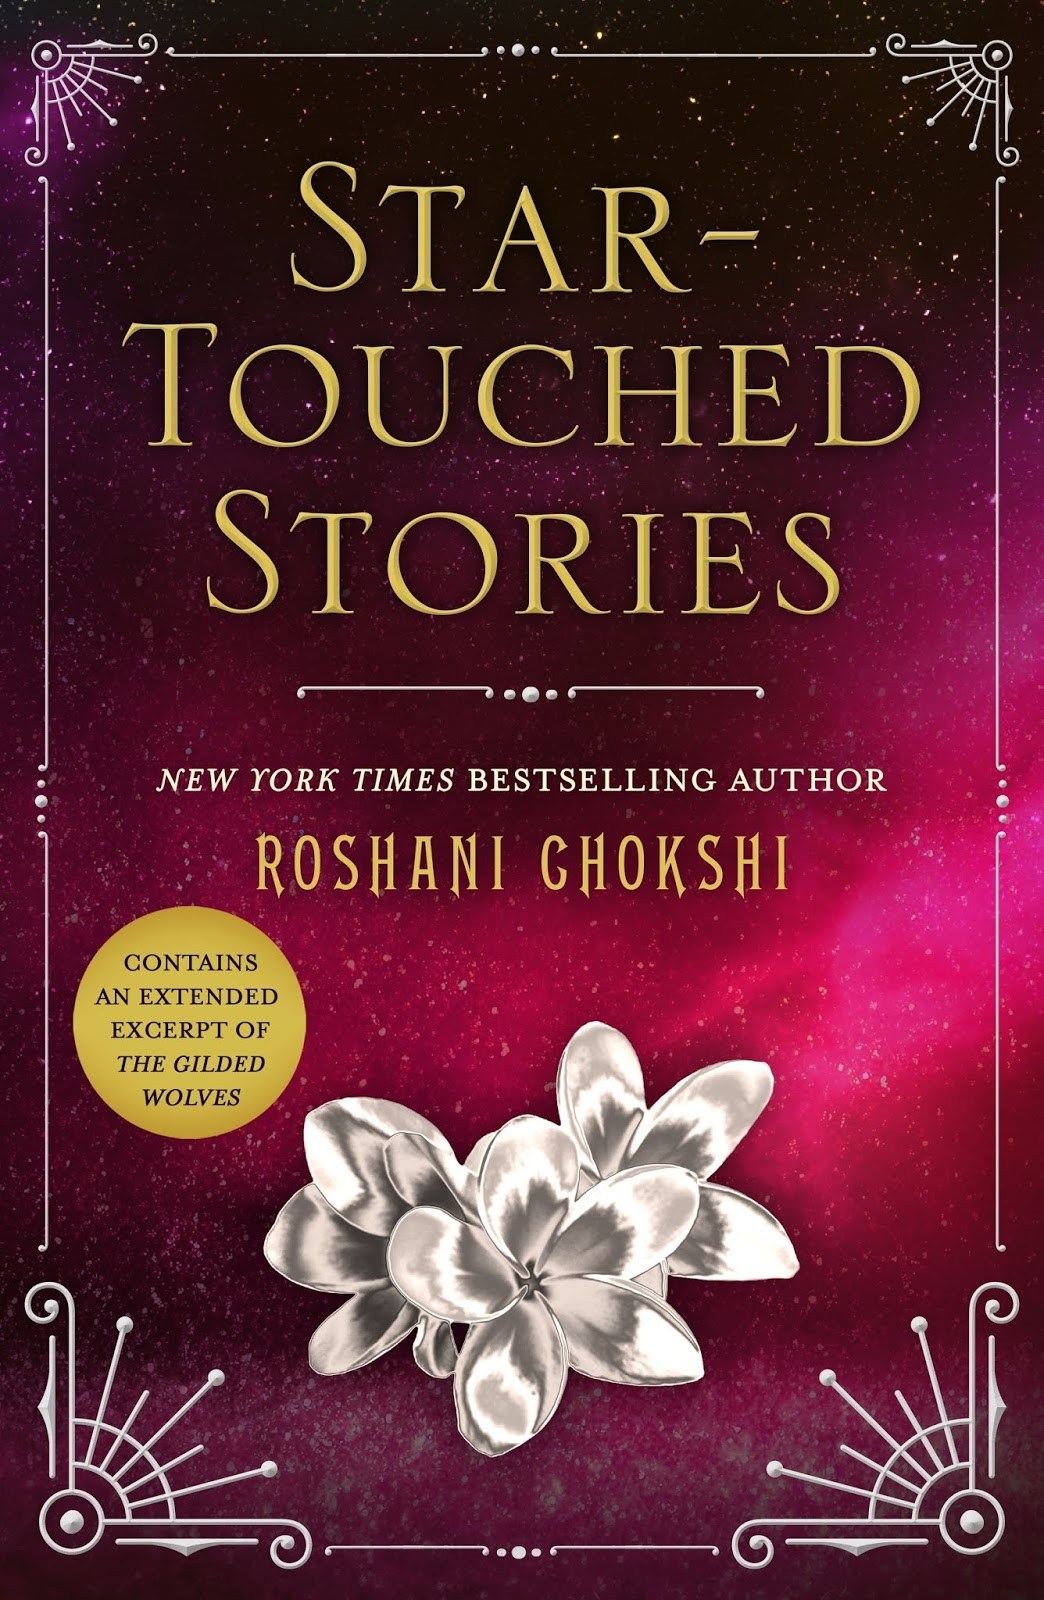 Star Touched Stories By Roshani Chokshi Publisher Wednesday Books Publication Date August 7 2018 Rating 4 Stars Source EARC From NetGalley